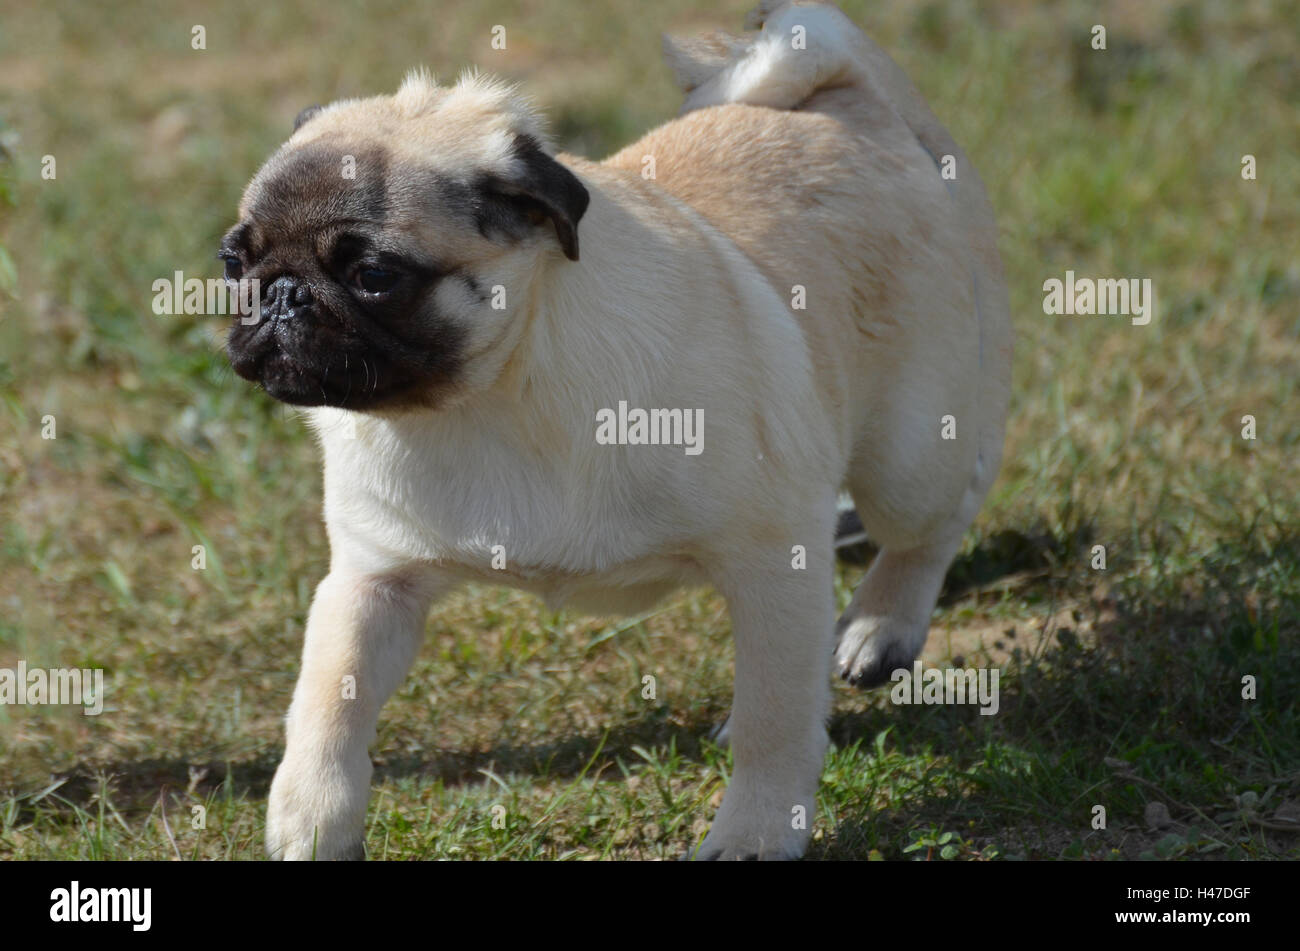 Cute pug dog walking gingerly on the grass. - Stock Image